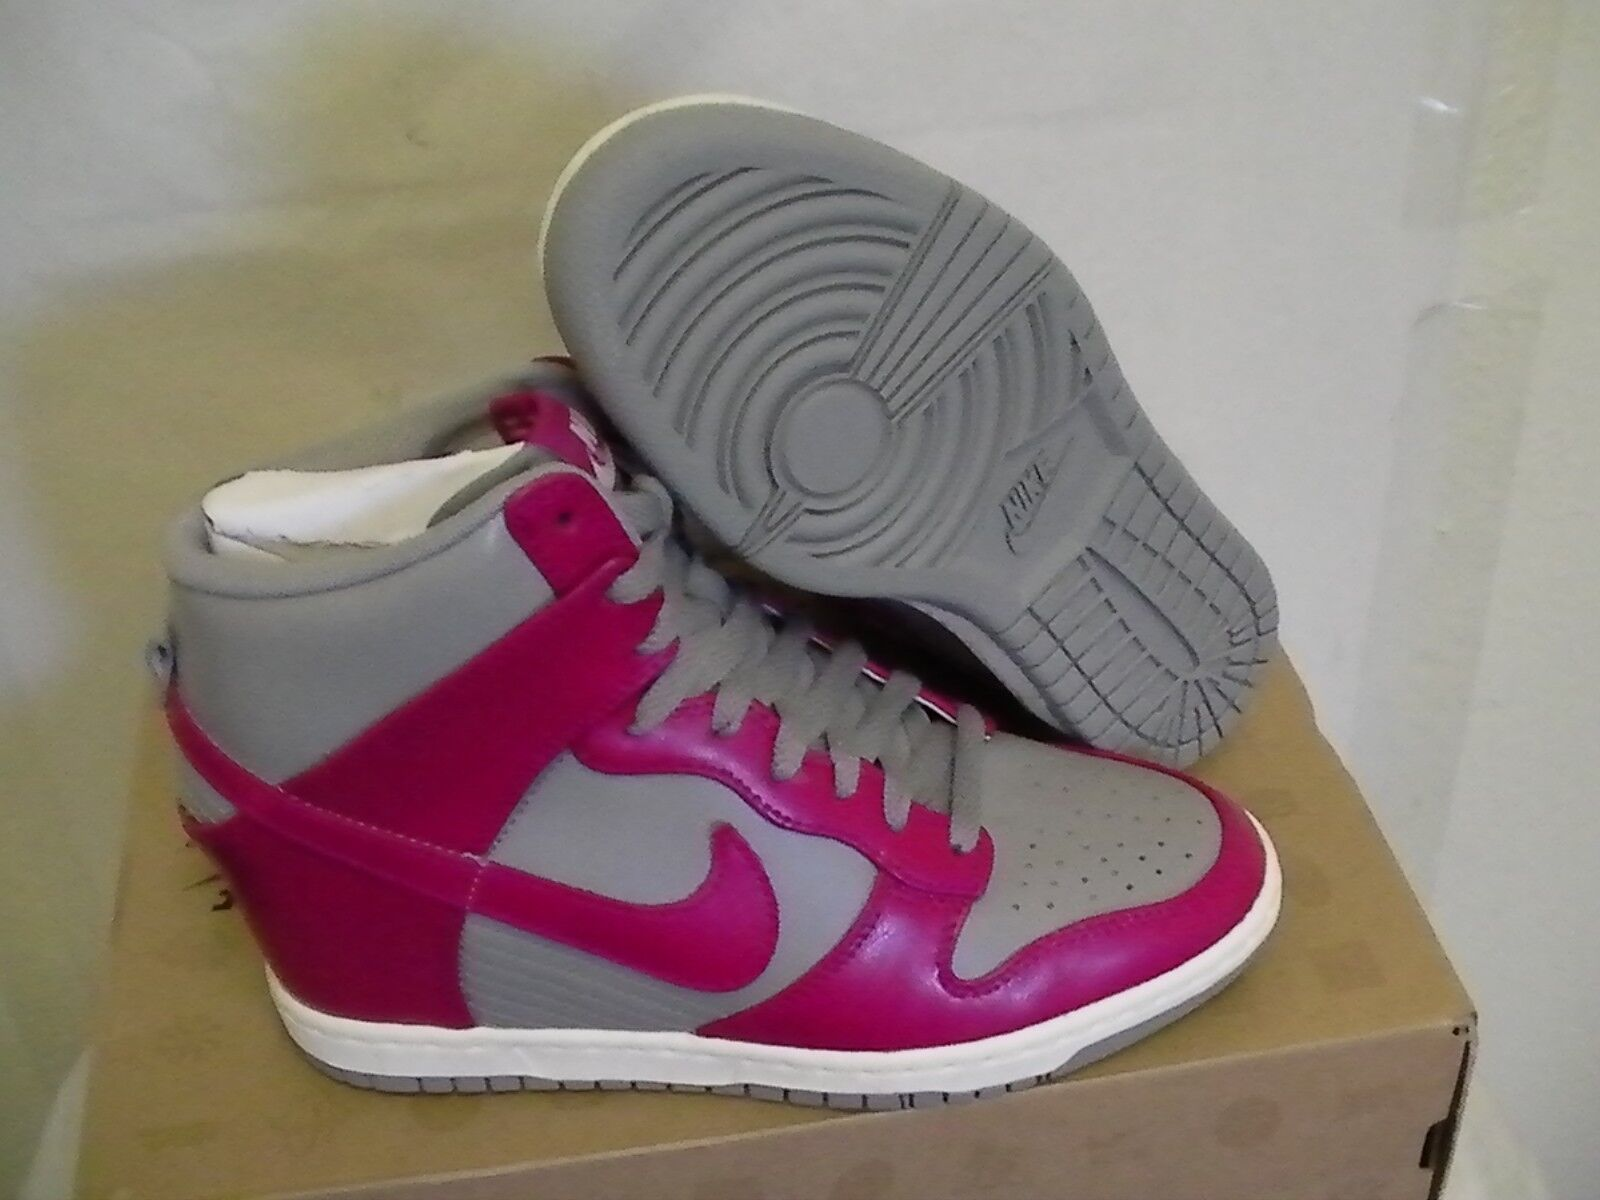 femmes  nike dunk sky hi basketball  chaussures  Taille 6.5 new with box